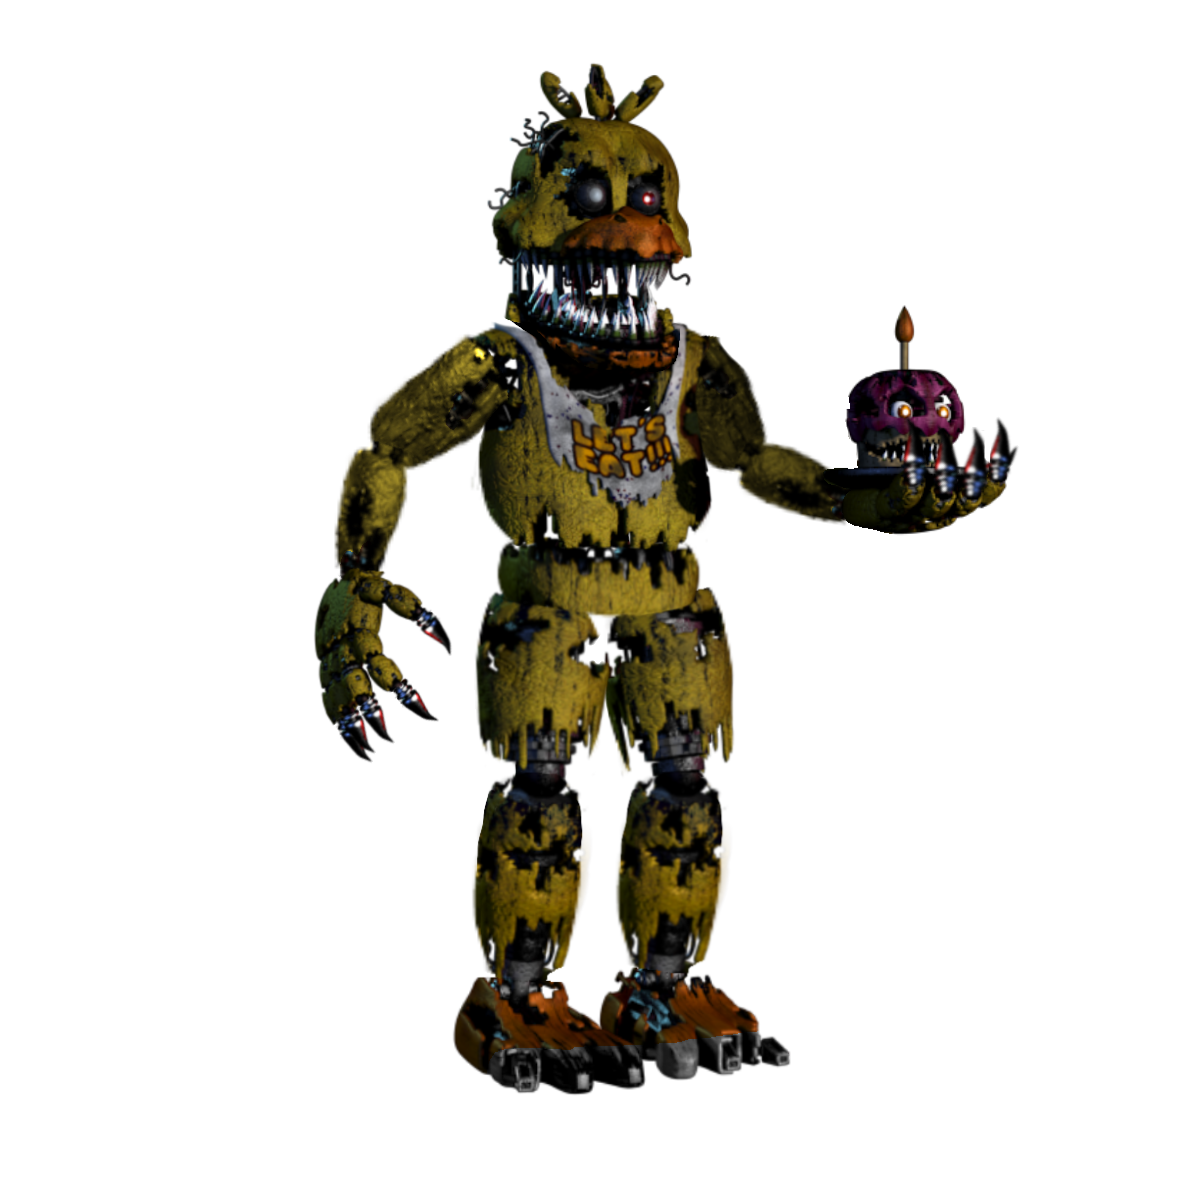 Fnaf 4 chica png. Image nightmare unwithered five